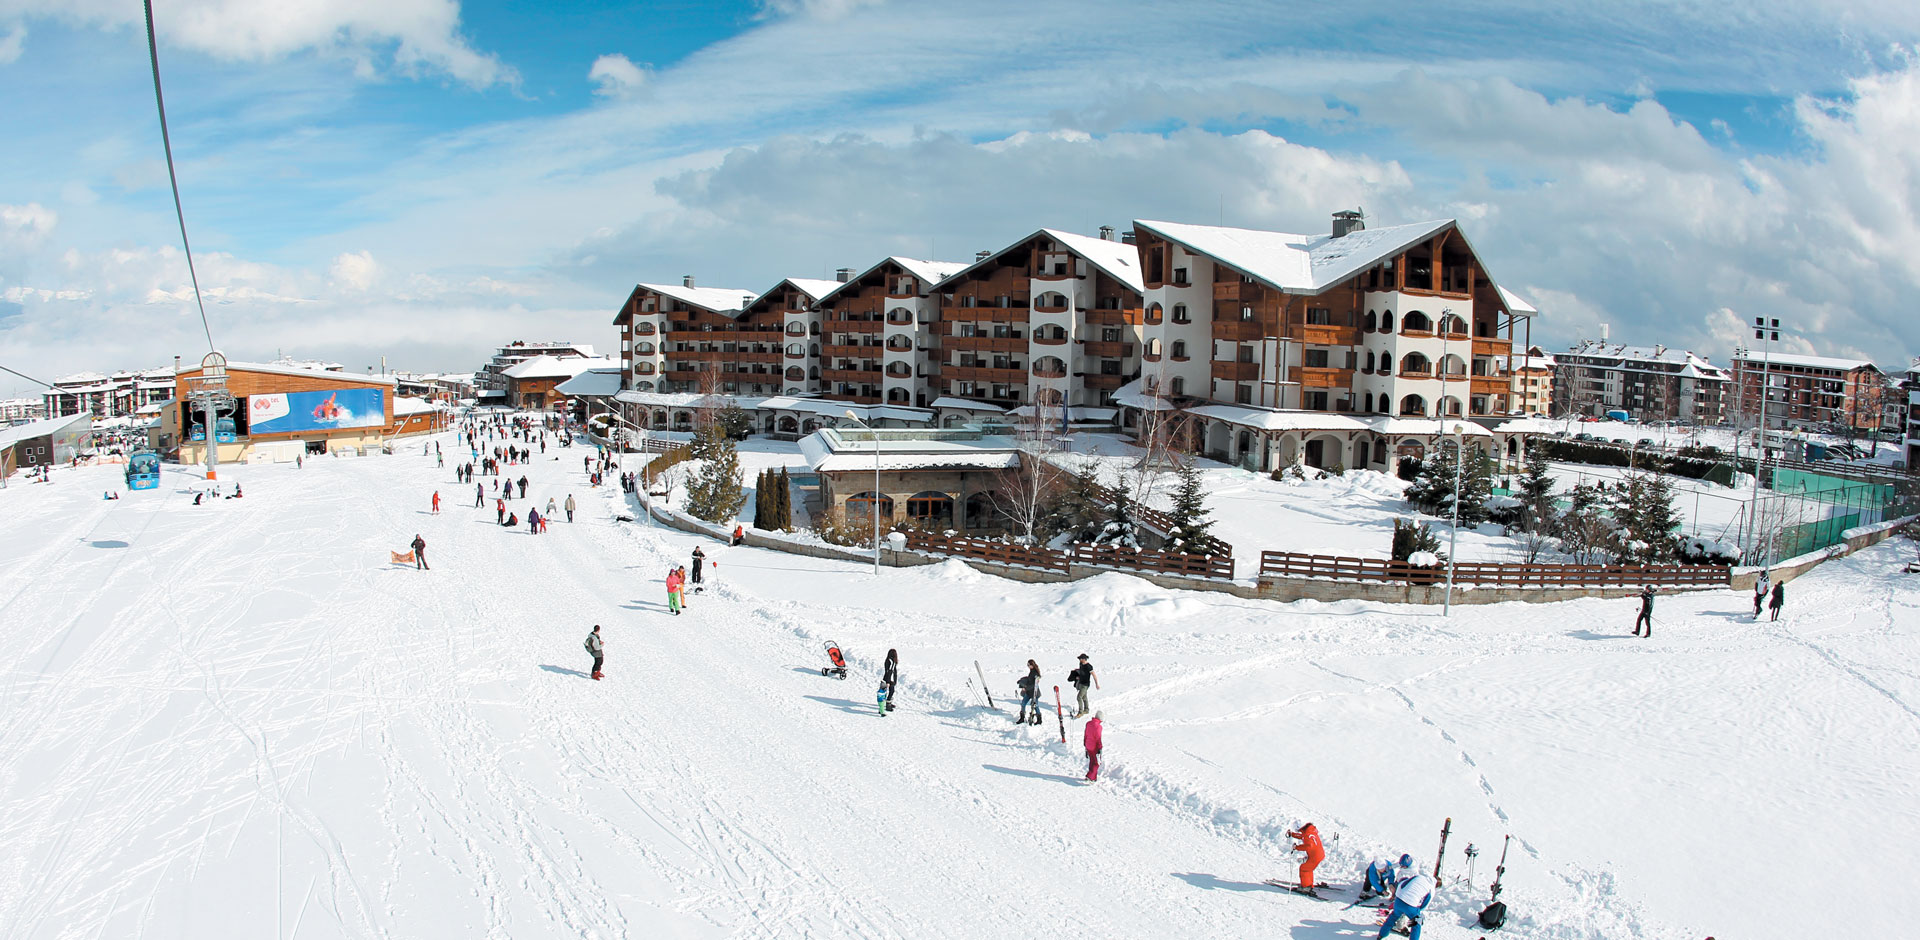 Take the last chance to ski and visit Bansko, Bulgaria!